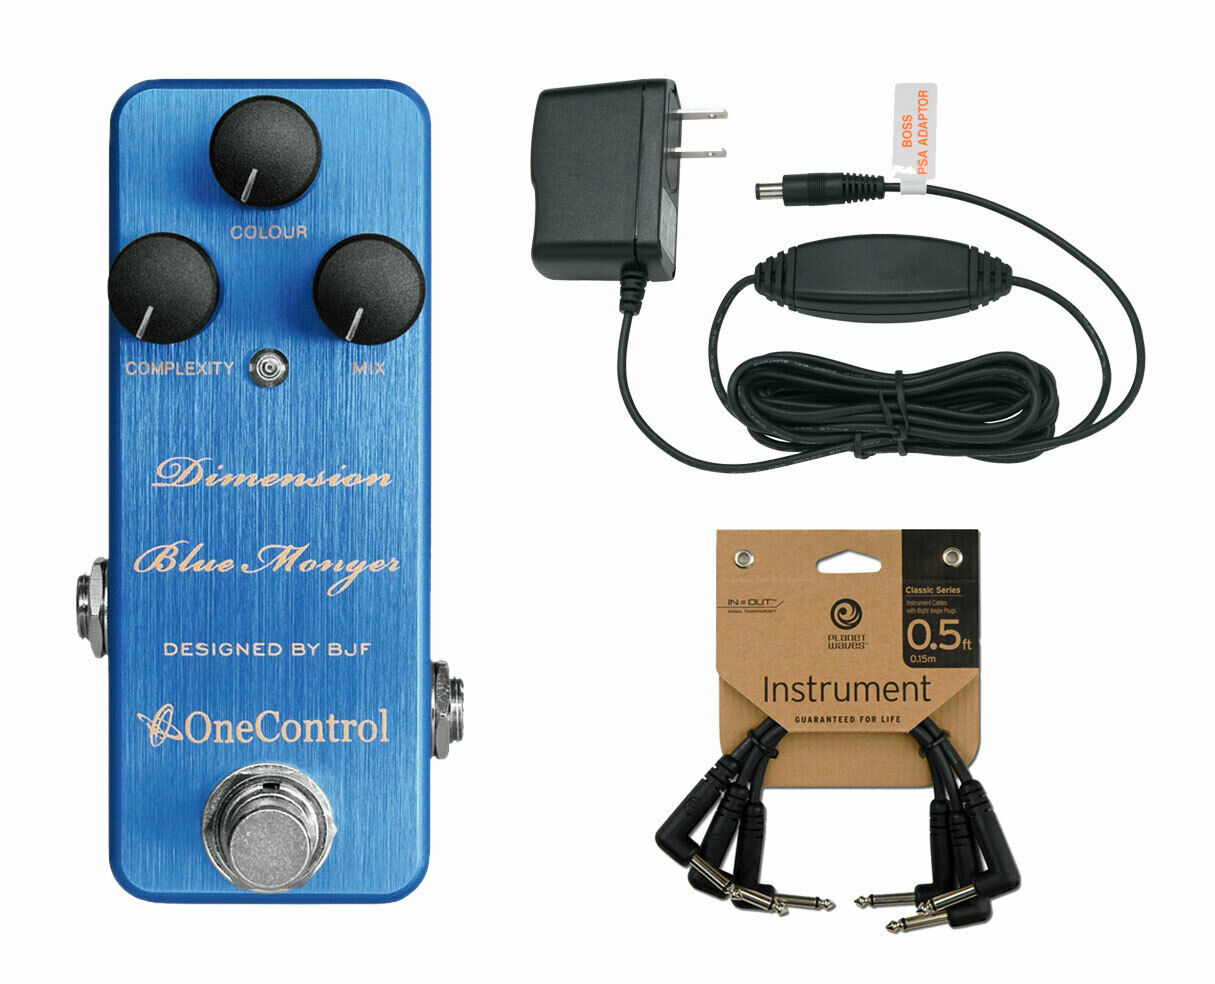 One Control Dimension Blau Modulation Power Supply Patch Cables (3-Pack)